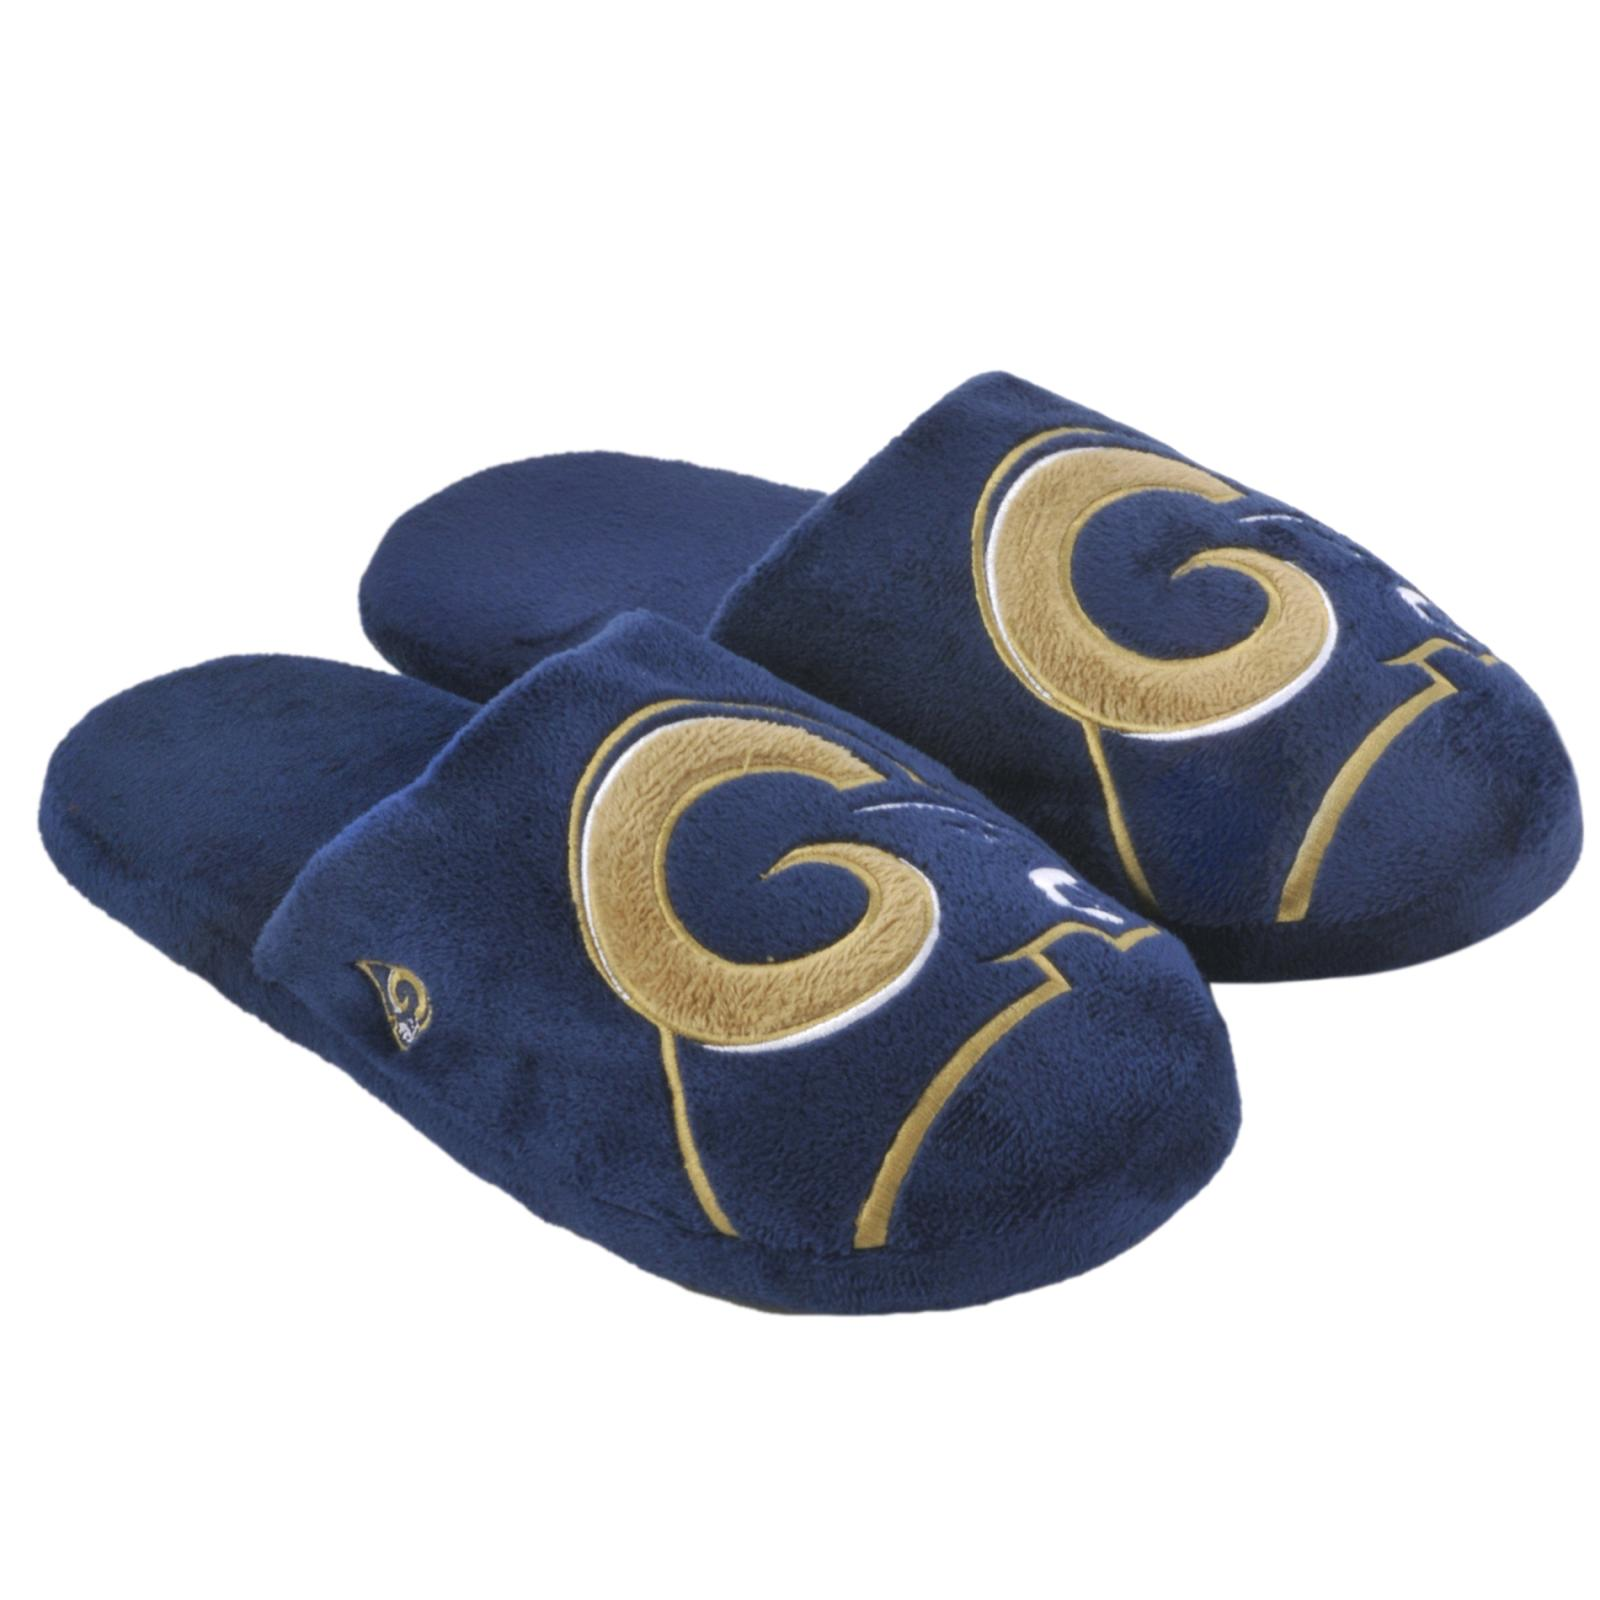 NFL St. Louis Rams Big Logo Slippers - Thumbnail 0